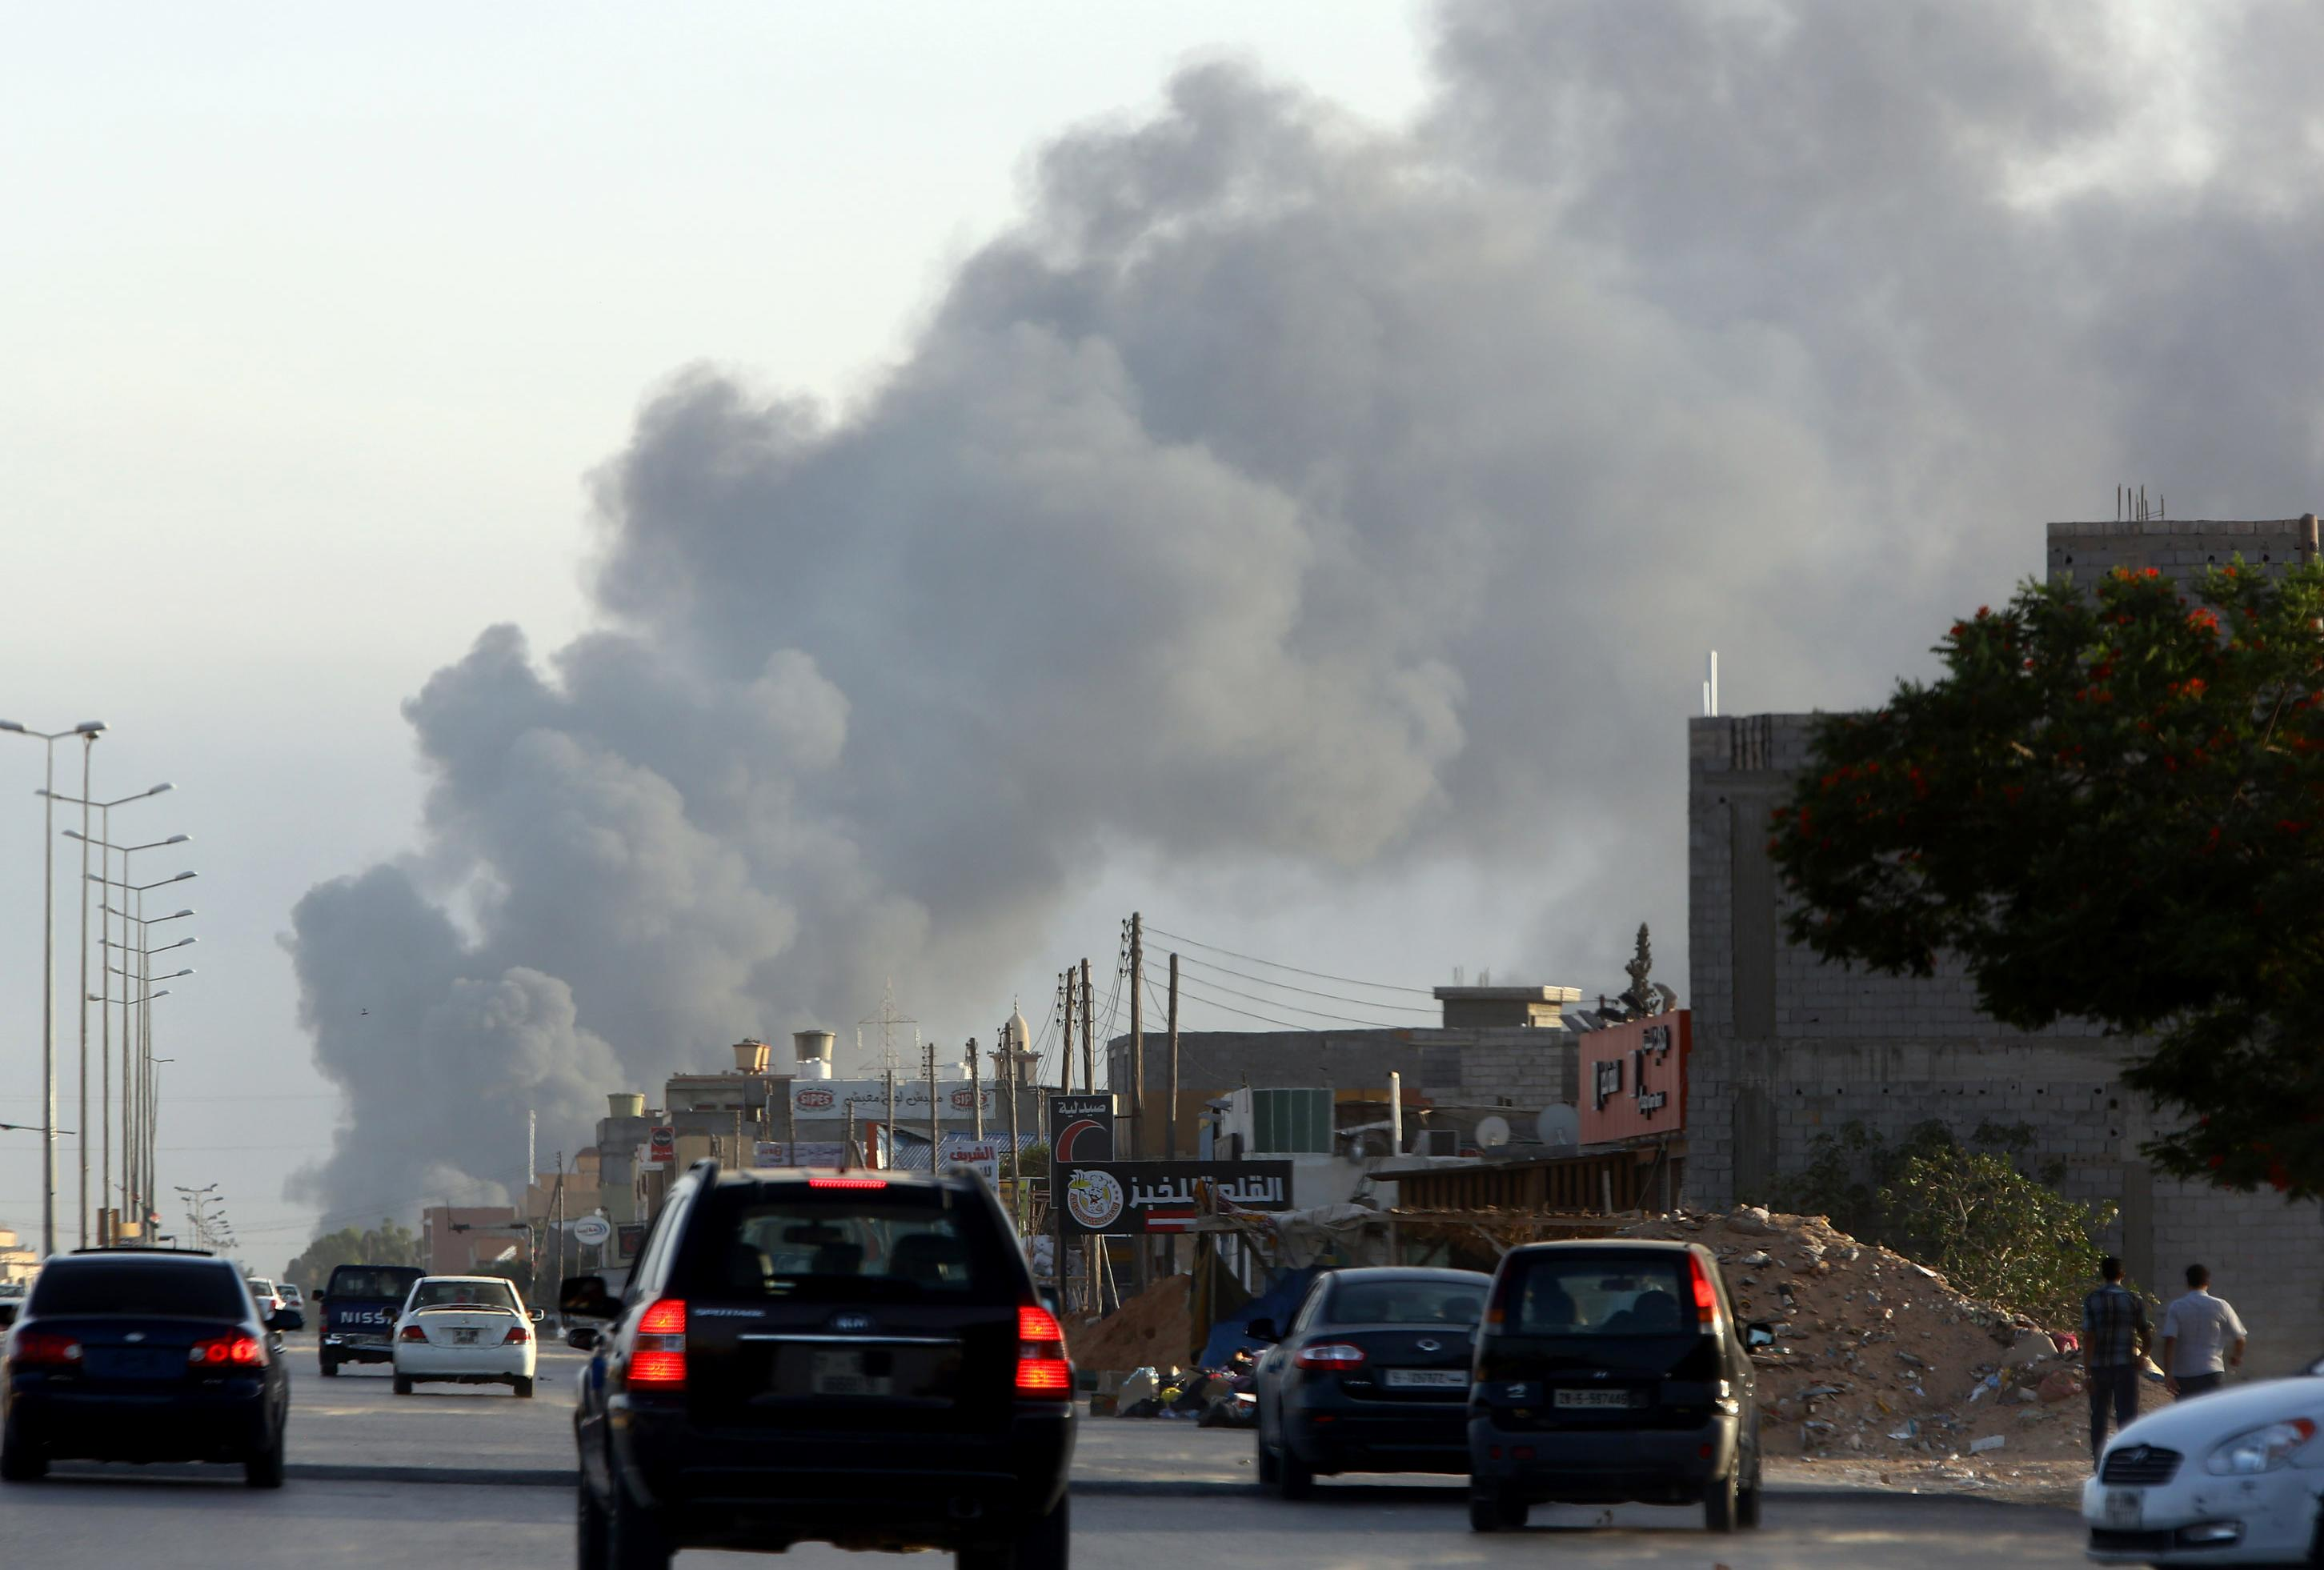 Smoke billows from an area near Tripoli's international airport as fighting between rival factions around the capital's airport continues on July 24, 2014